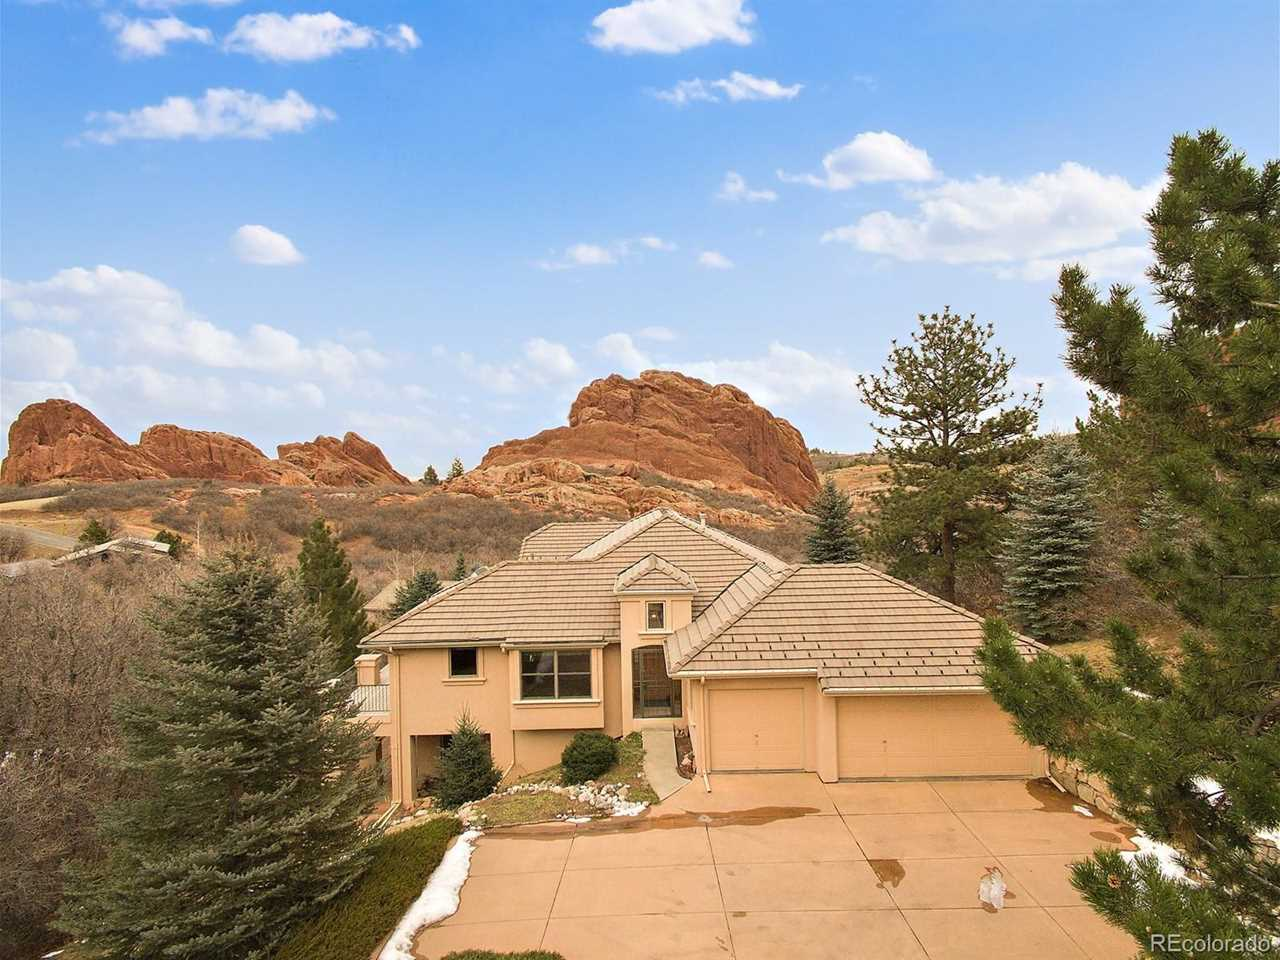 5350 Black Squirrel Run located in Littleton, CO 80125 with MLS#4637628 Photo 1